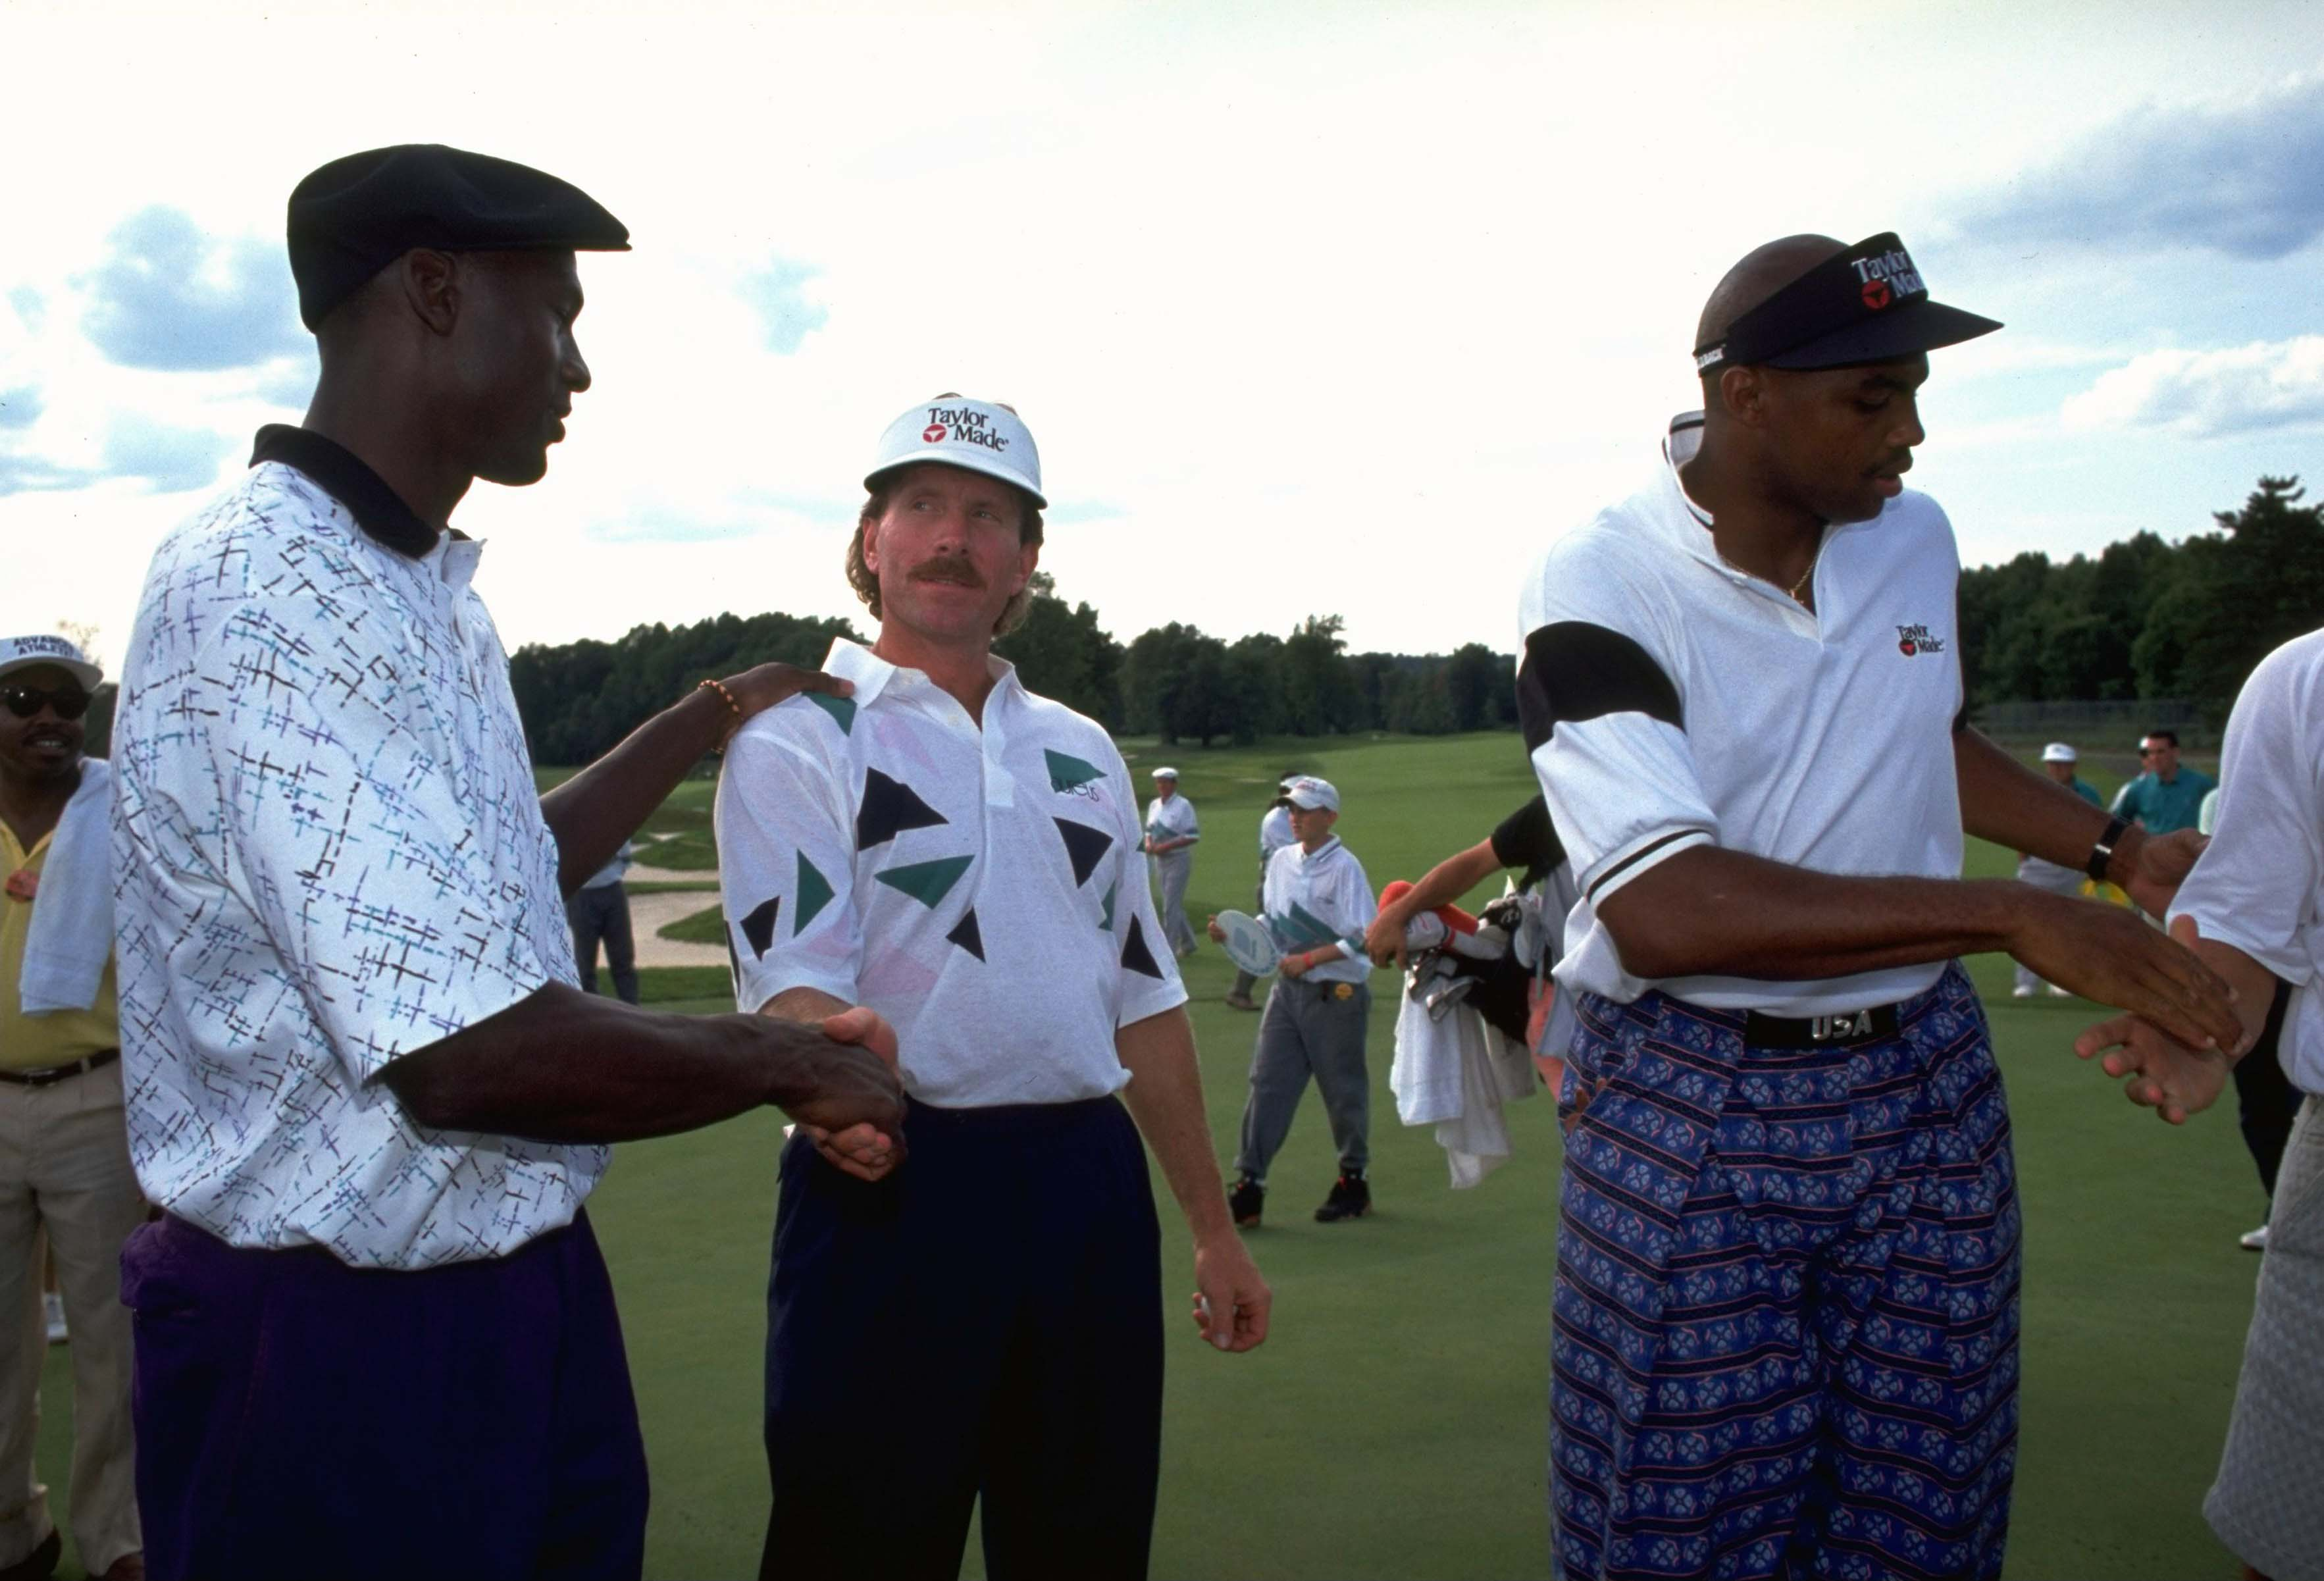 Michael Jordan, Mike Schmidt and Charles Barkley